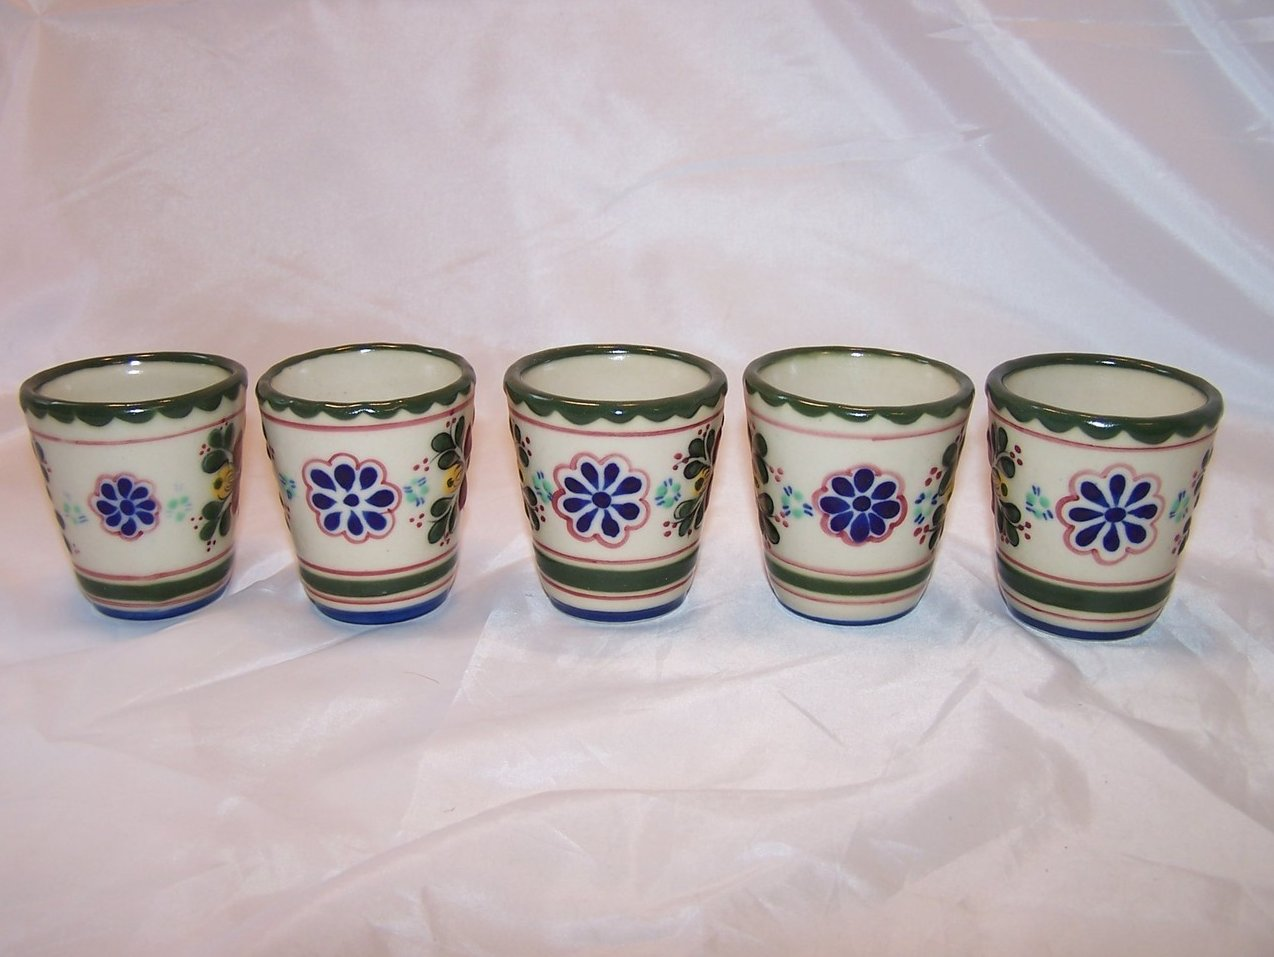 Image 1 of Mexican Mini Flower Pots, Windowsill Pots, Set of 5, Mexico